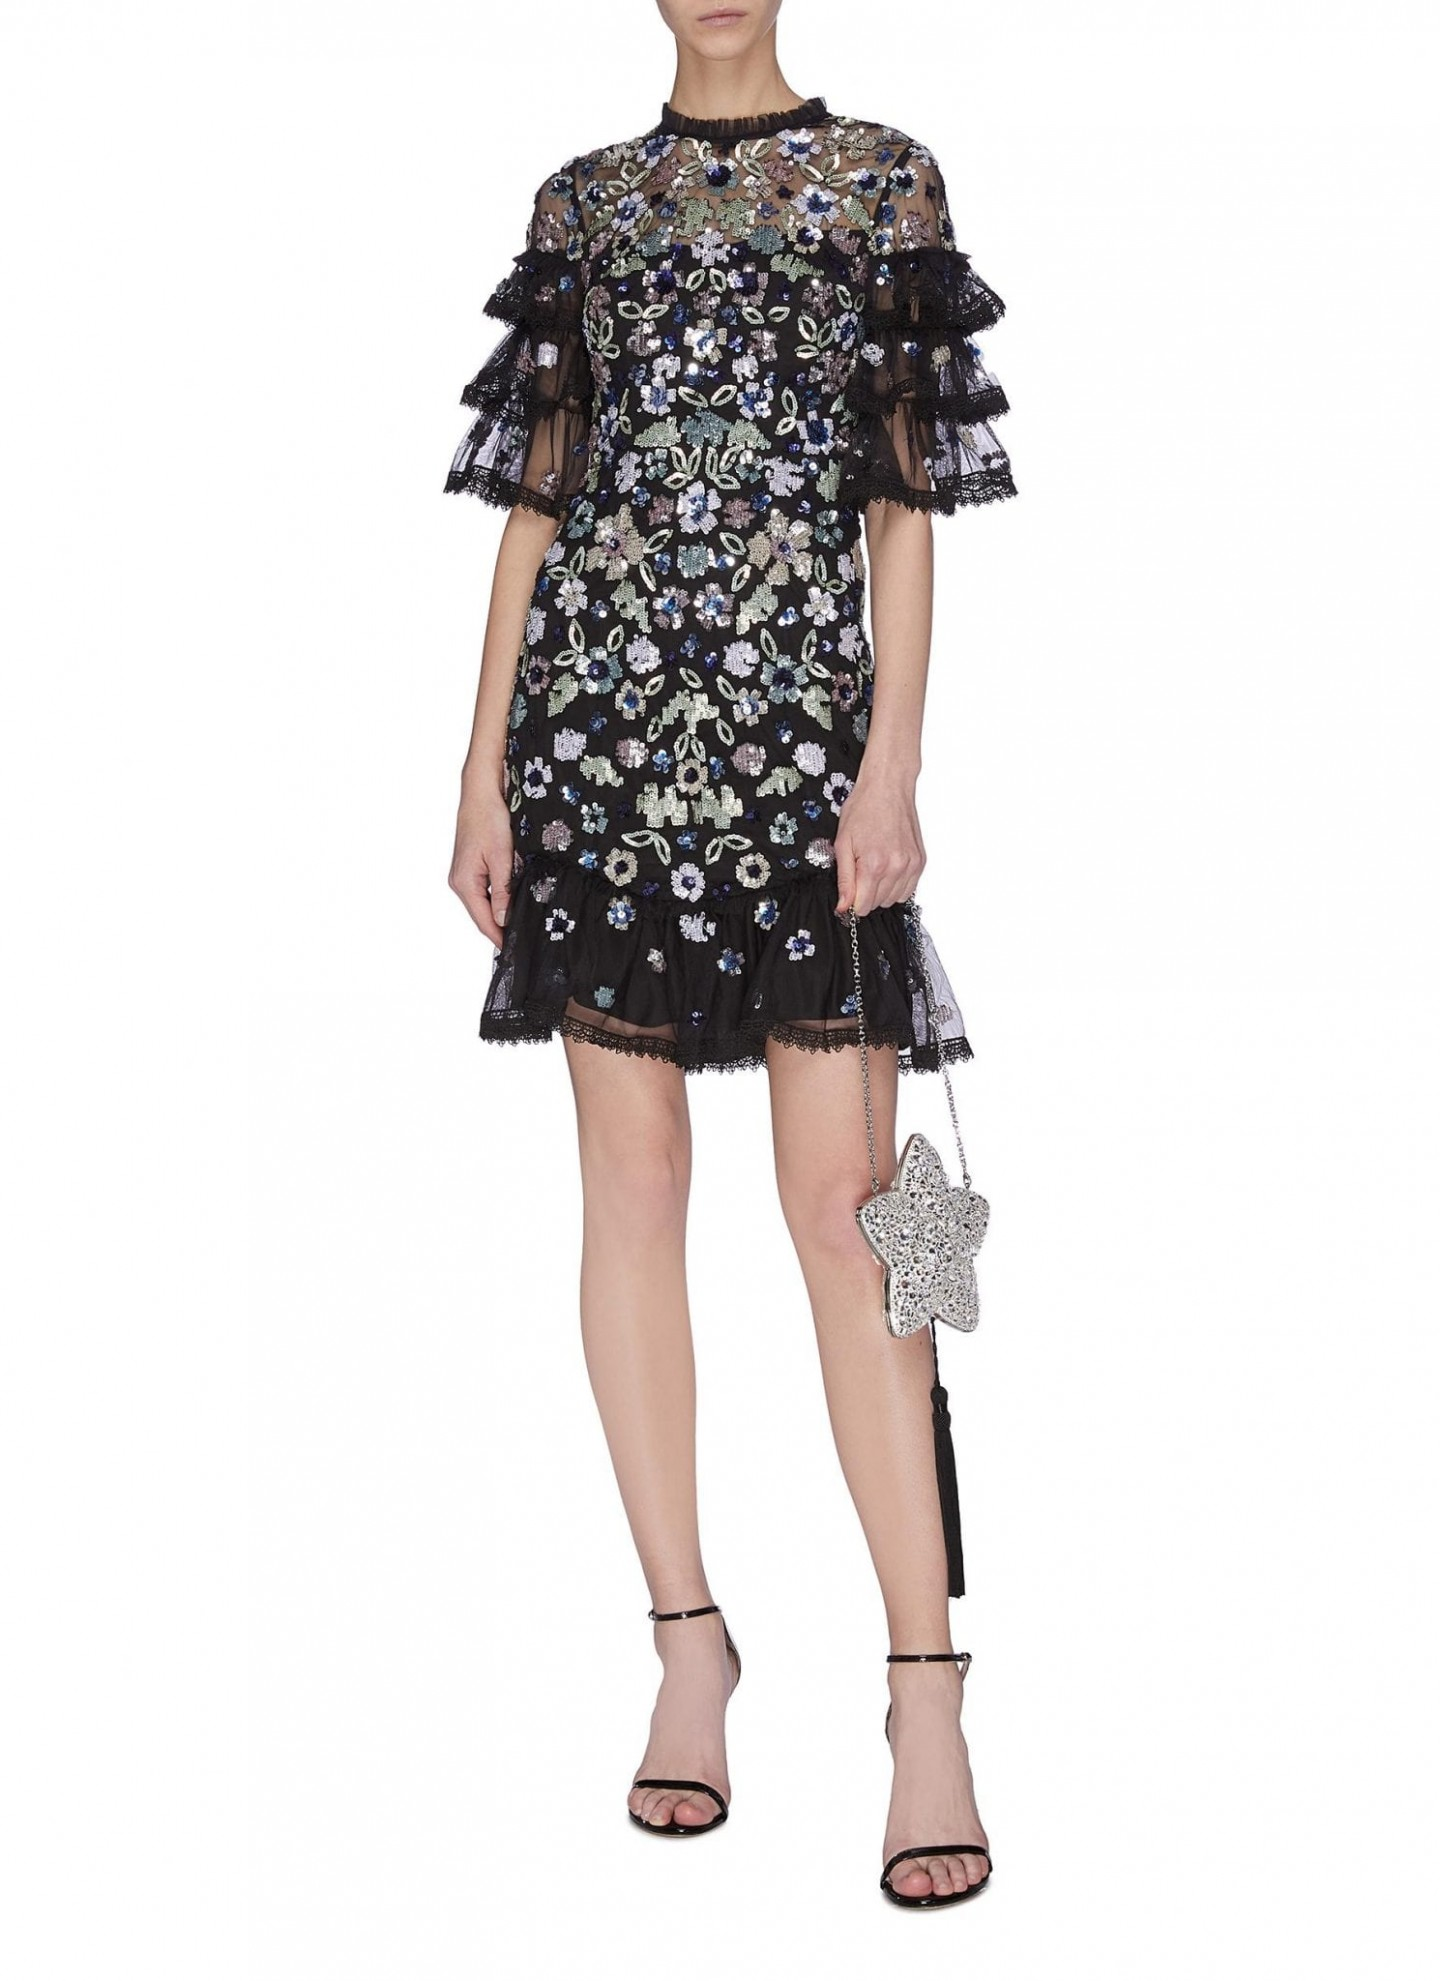 NEEDLE & THREAD 'Meadow' Sequin Embroidered Ruffle Mini Dress